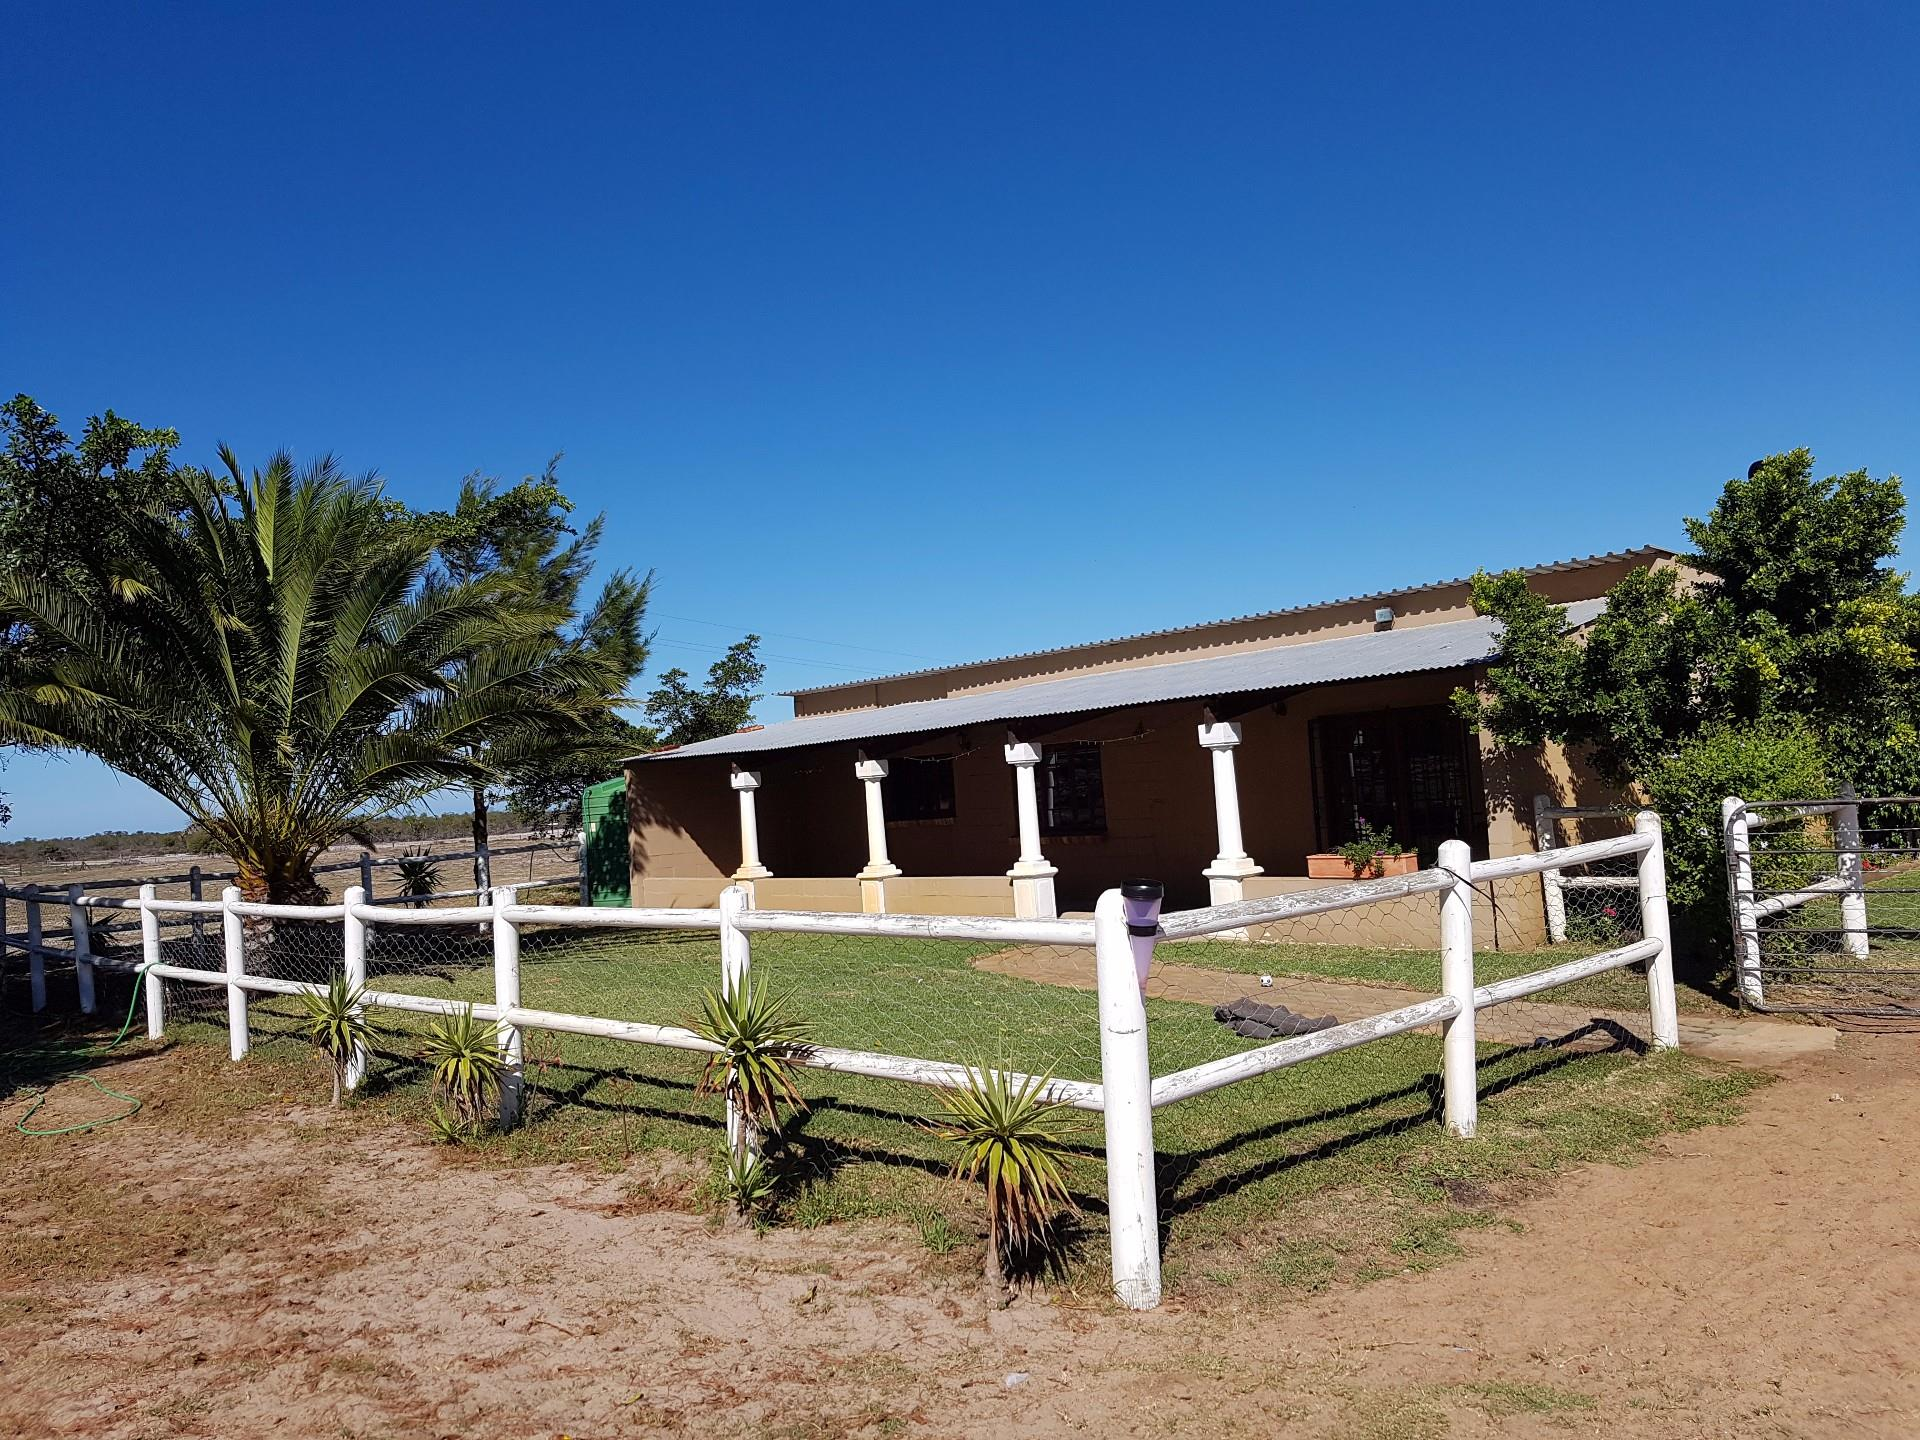 Yzerfontein, Yzerfontein Property  | Houses For Sale Yzerfontein, Yzerfontein, Agricultural Holding 3 bedrooms property for sale Price:13,000,000